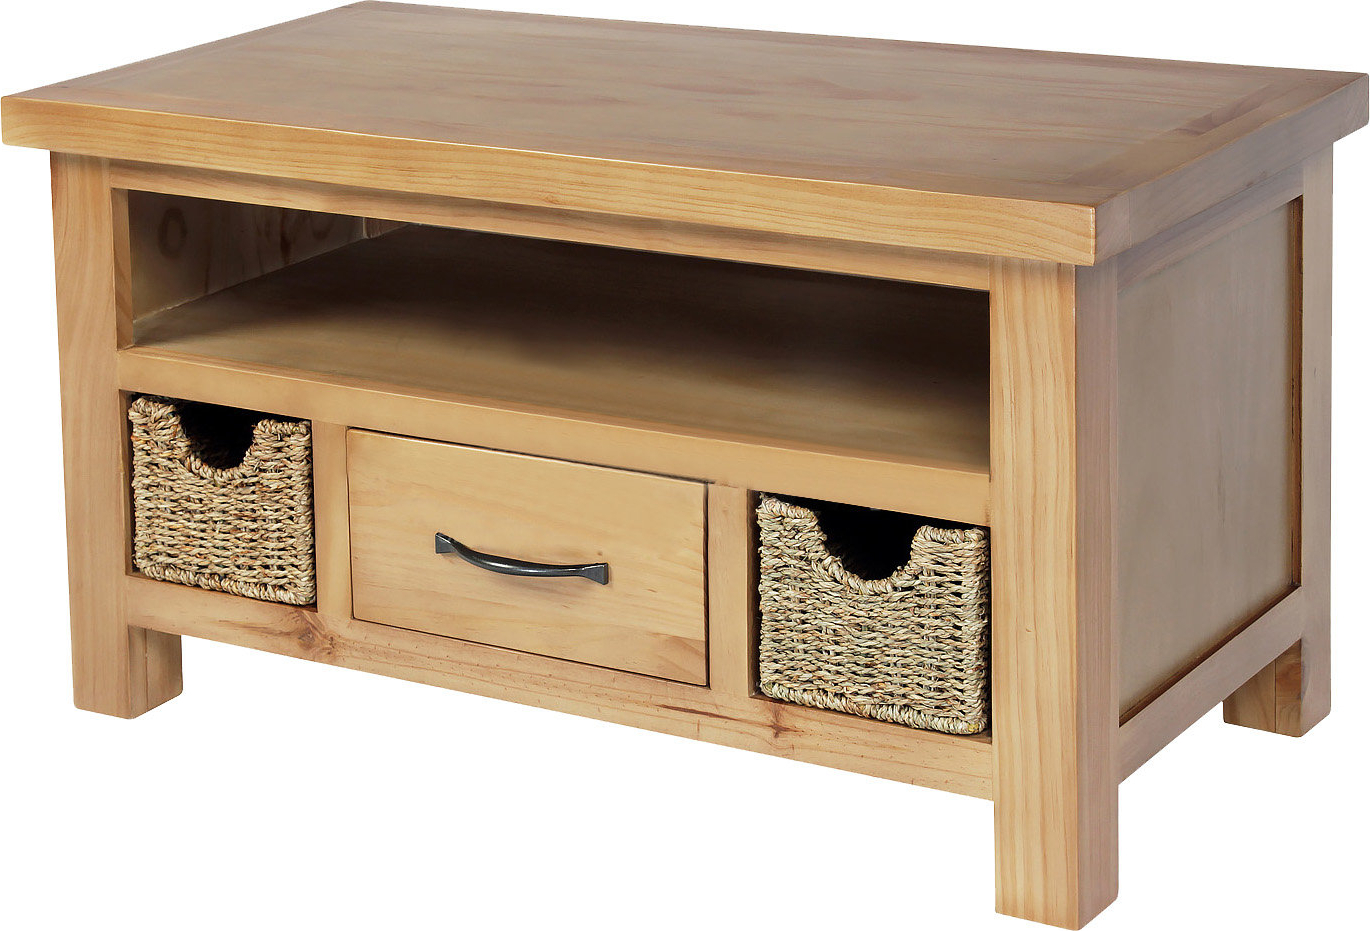 Tv Stands With Baskets Intended For 2017 Tv Stand With Wicker Baskets (View 5 of 20)